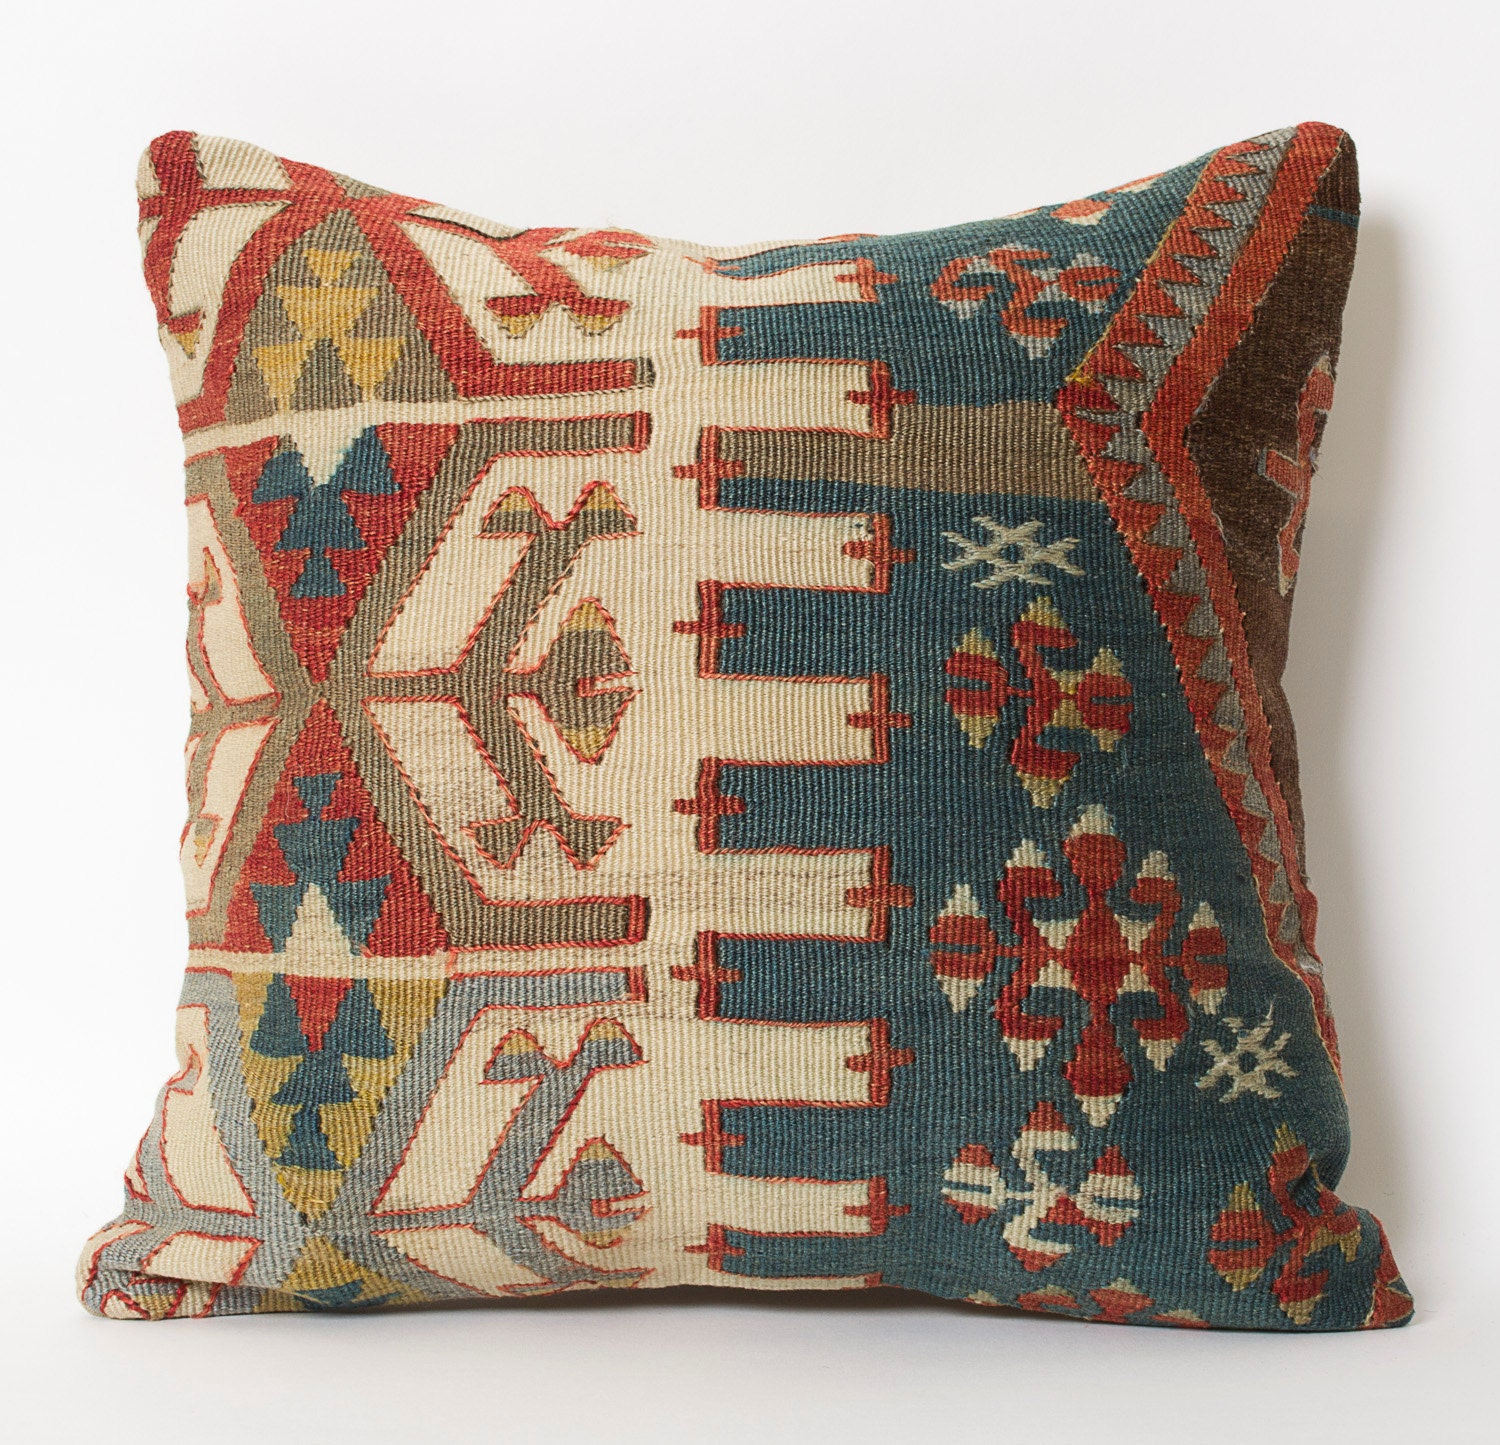 Decorative Pillows Kilim : Kilim Throw Pillowcase Bohemian Handwoven Pillow Decorative